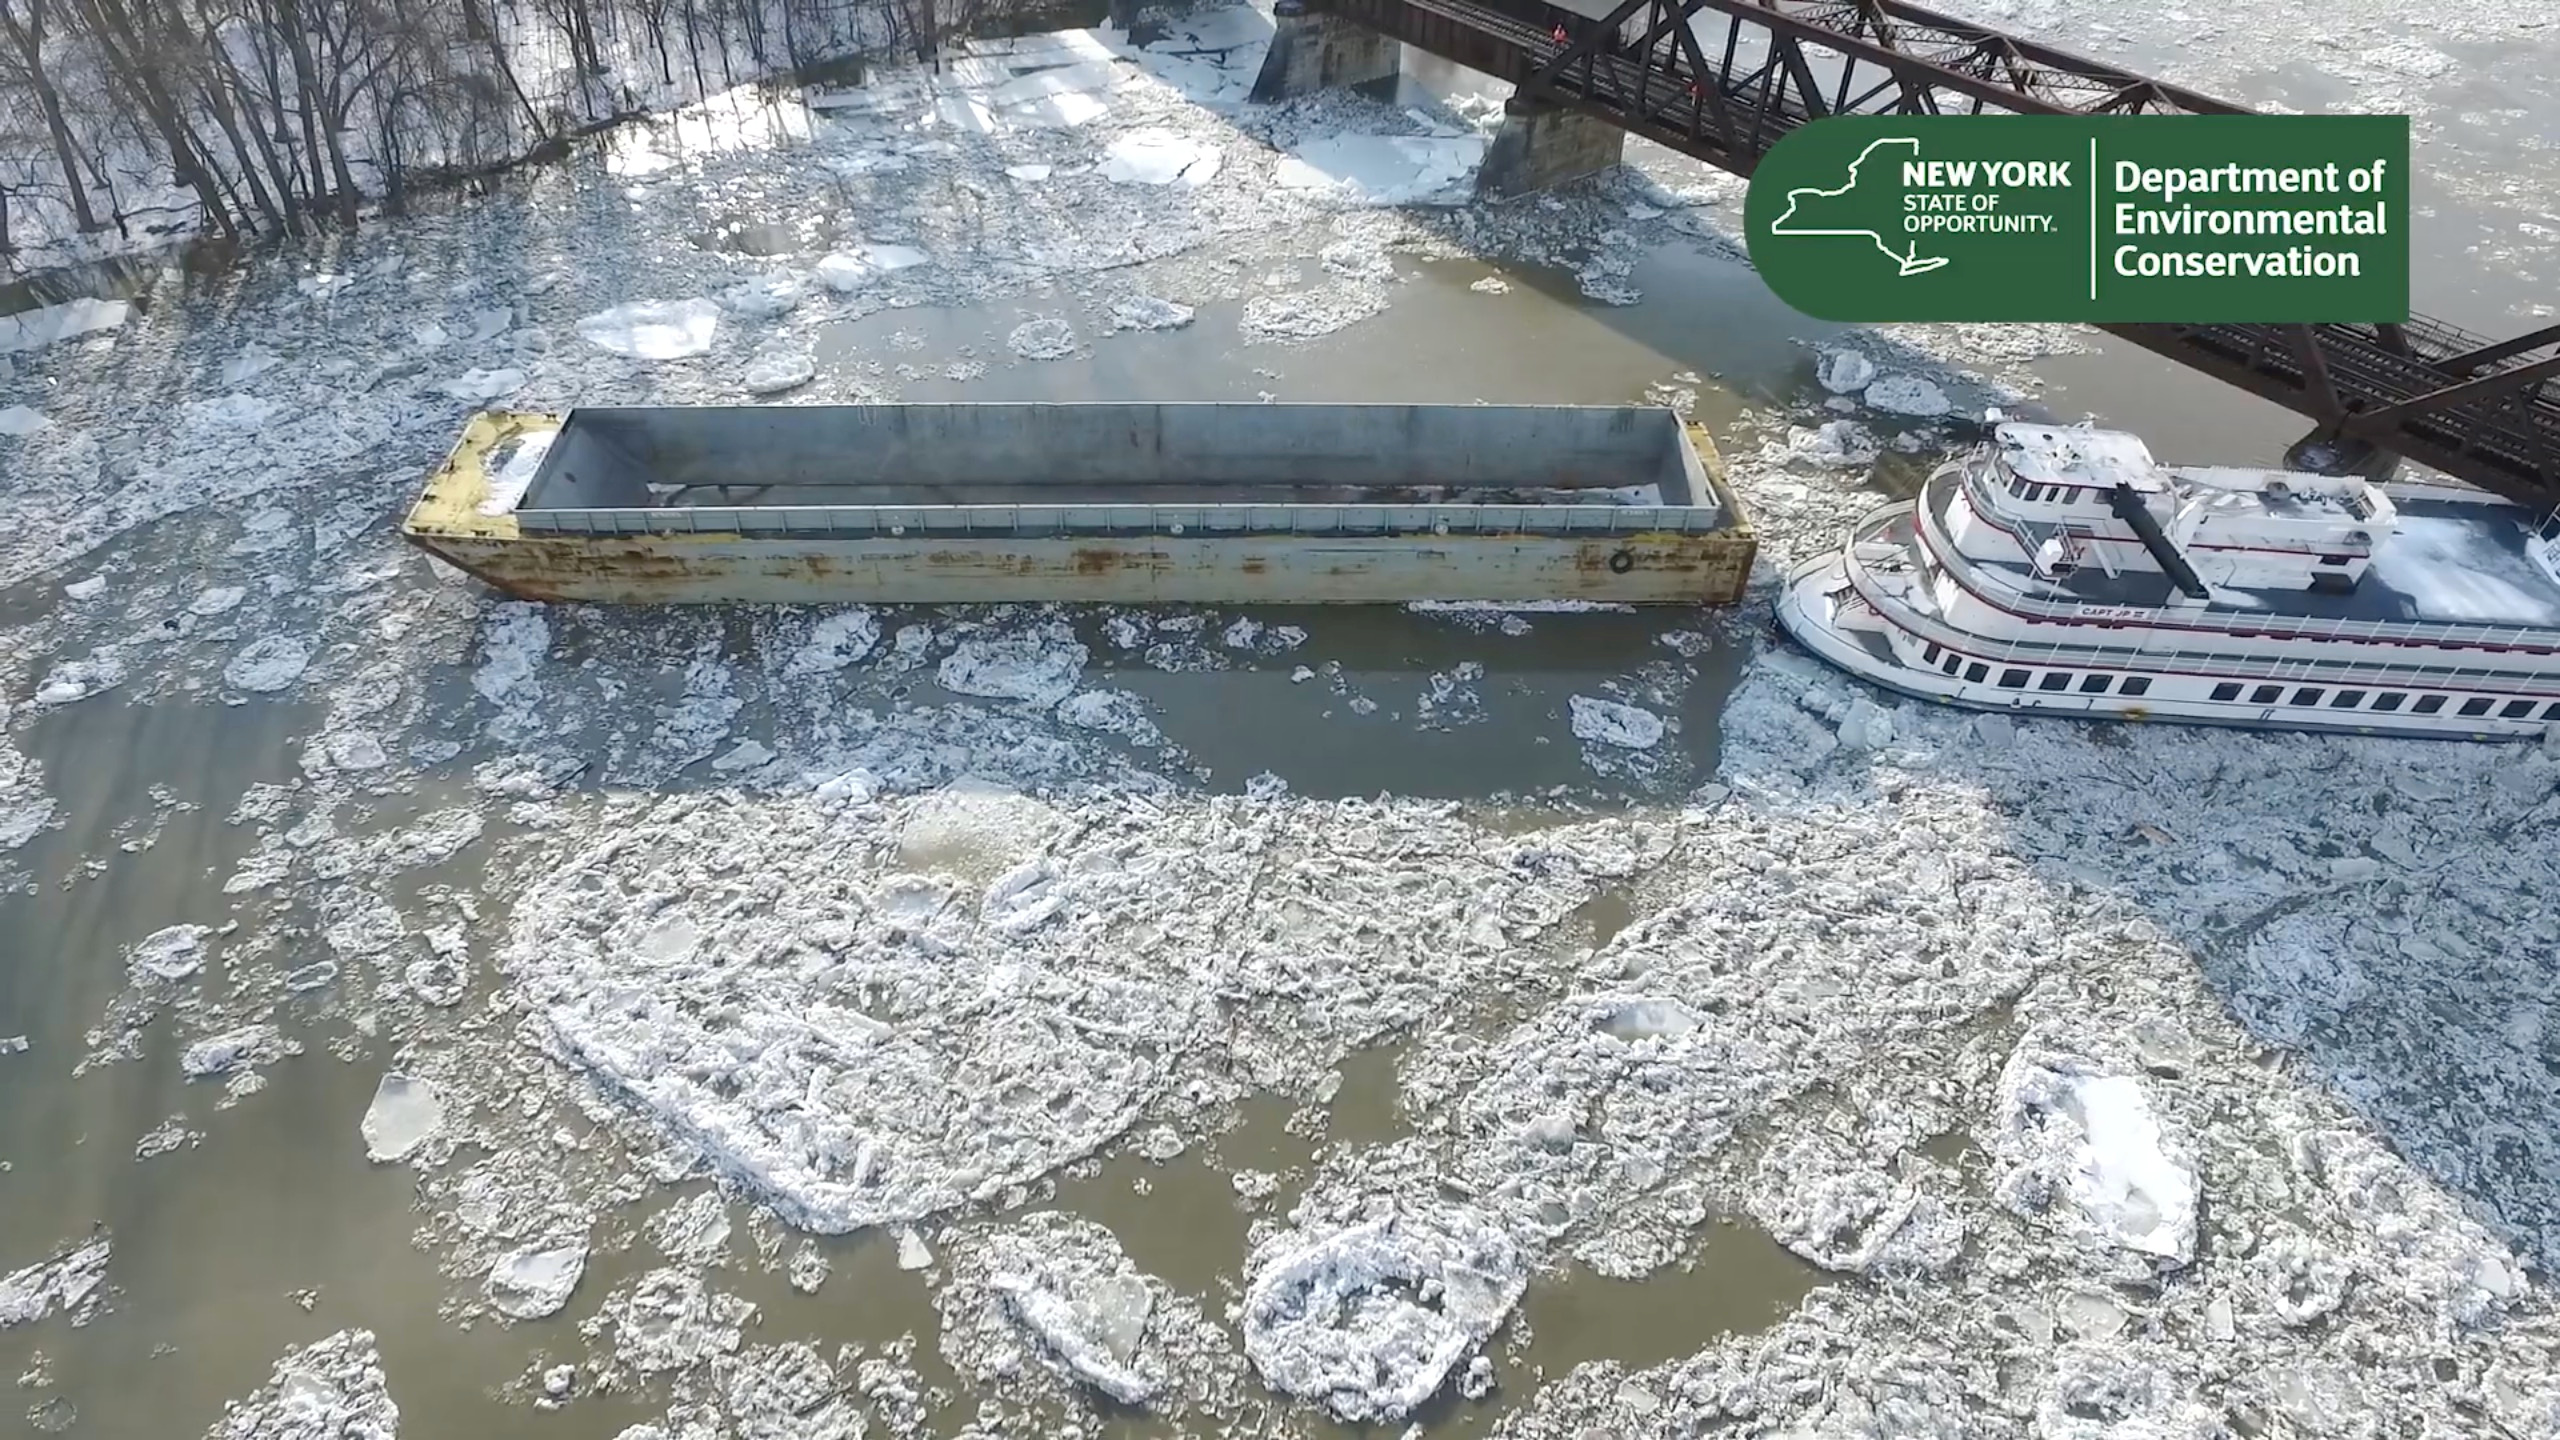 A boat collides under the rail bridge near the Corning Preserve, after breaking lose from its dock on the upper Hudson River and floating down stream towards Albany, New York, U.S., January 25, 2019, in this still image taken from a video obtained from social media. New York State Department of Environmental Conservation/via REUTERS